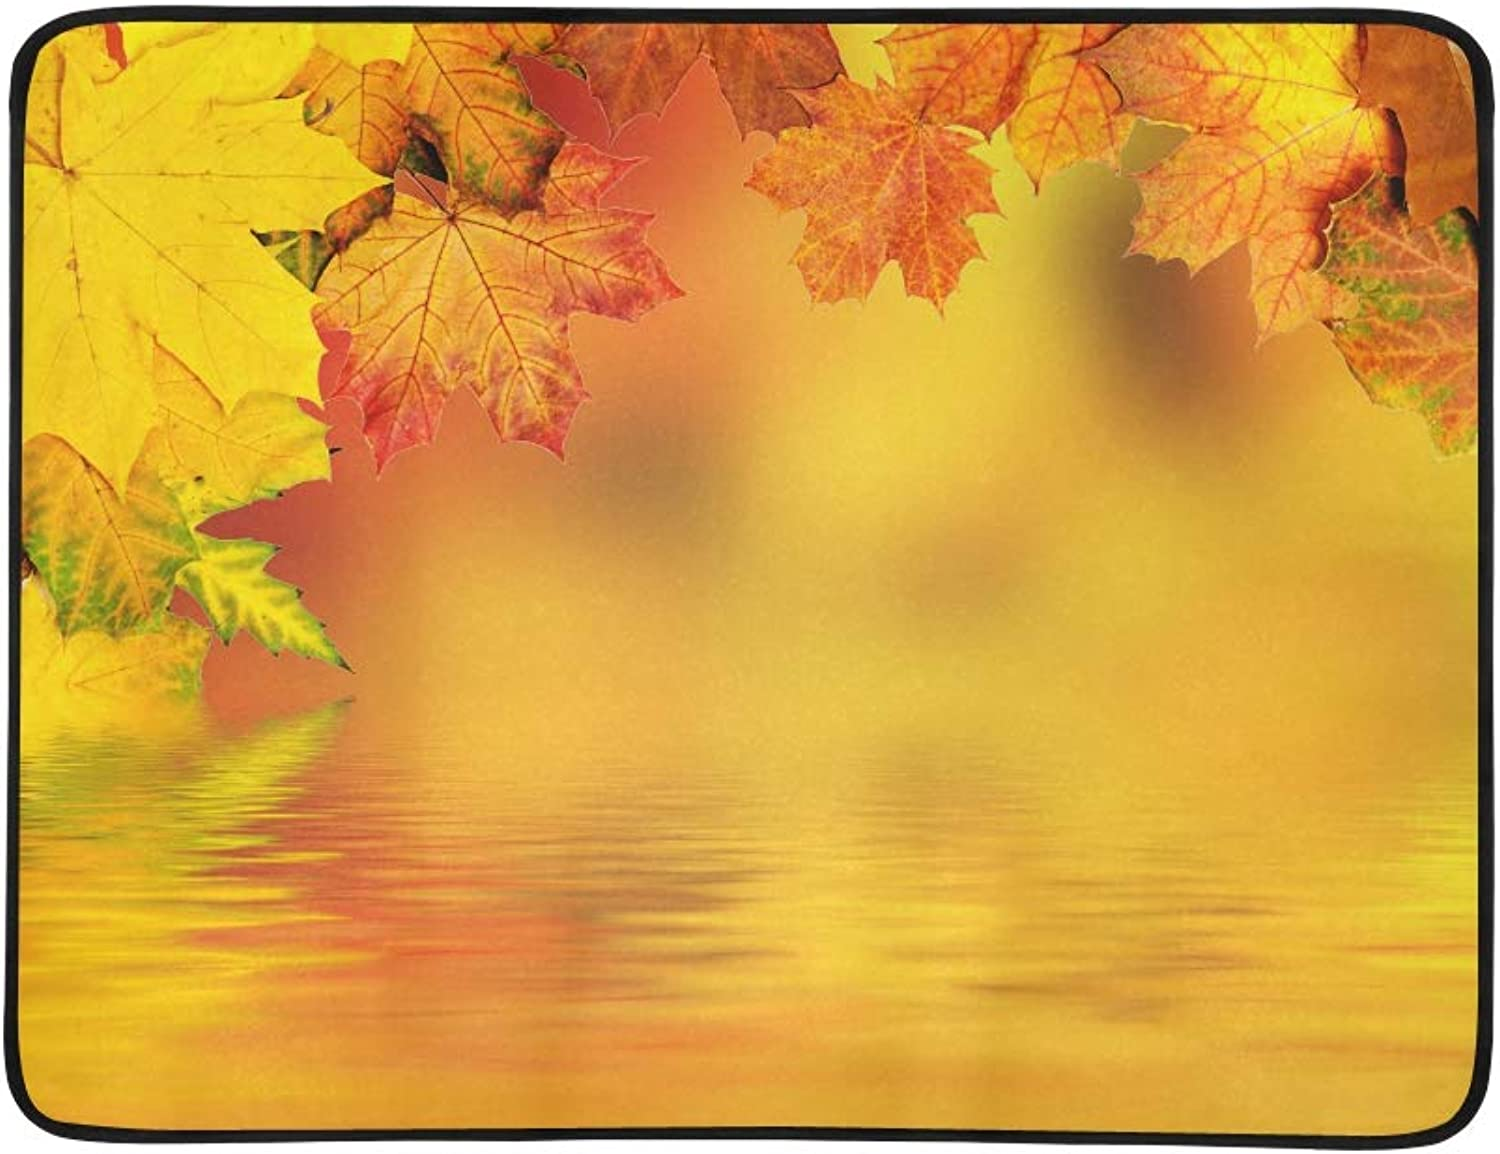 colorful Autumn Maple Leaves with Water Pattern Portable and Foldable Blanket Mat 60x78 Inch Handy Mat for Camping Picnic Beach Indoor Outdoor Travel